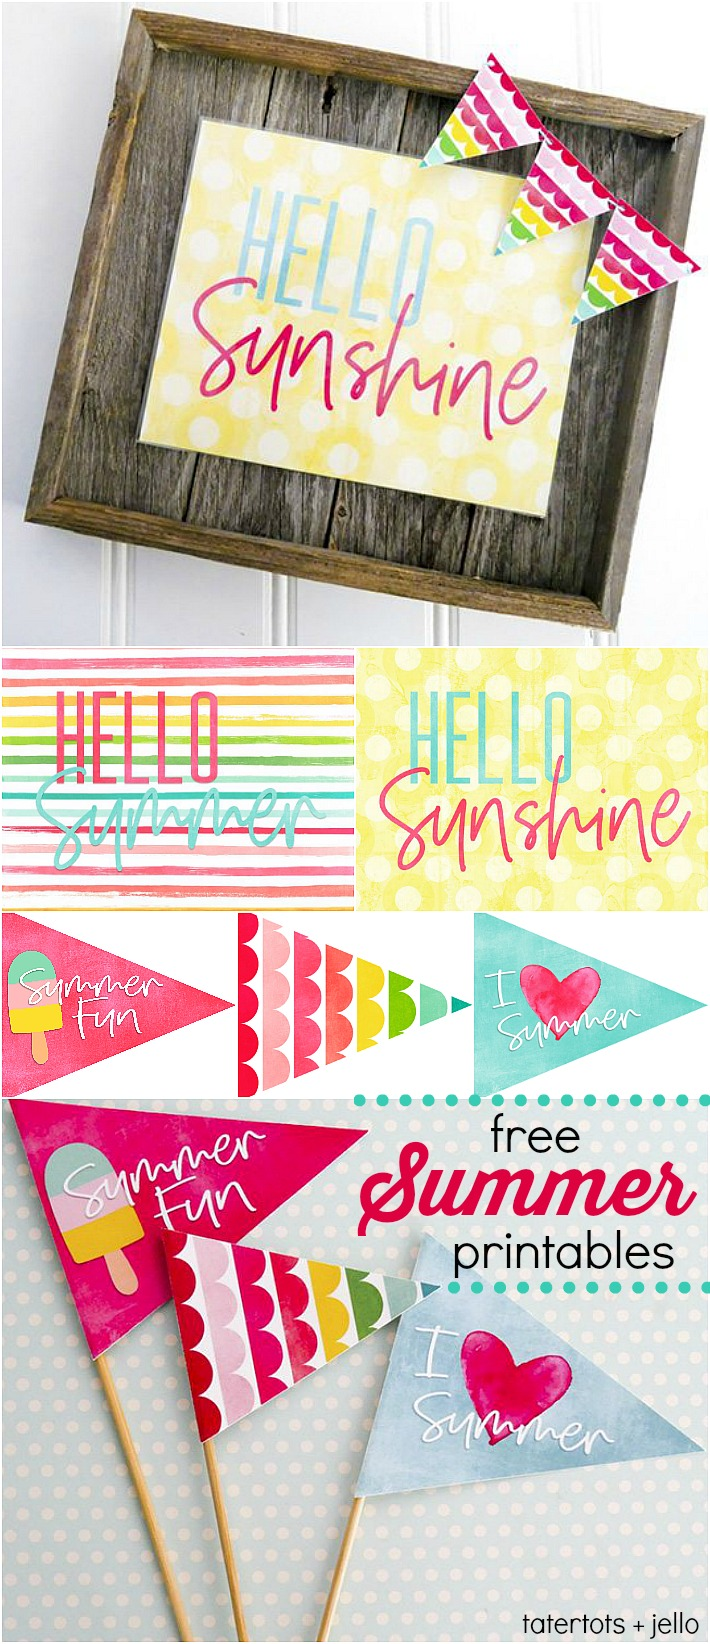 photograph regarding Free Printable Banners and Signs referred to as Good day Summer time Cost-free Printable Indication, Pennants and Extra! Free of charge